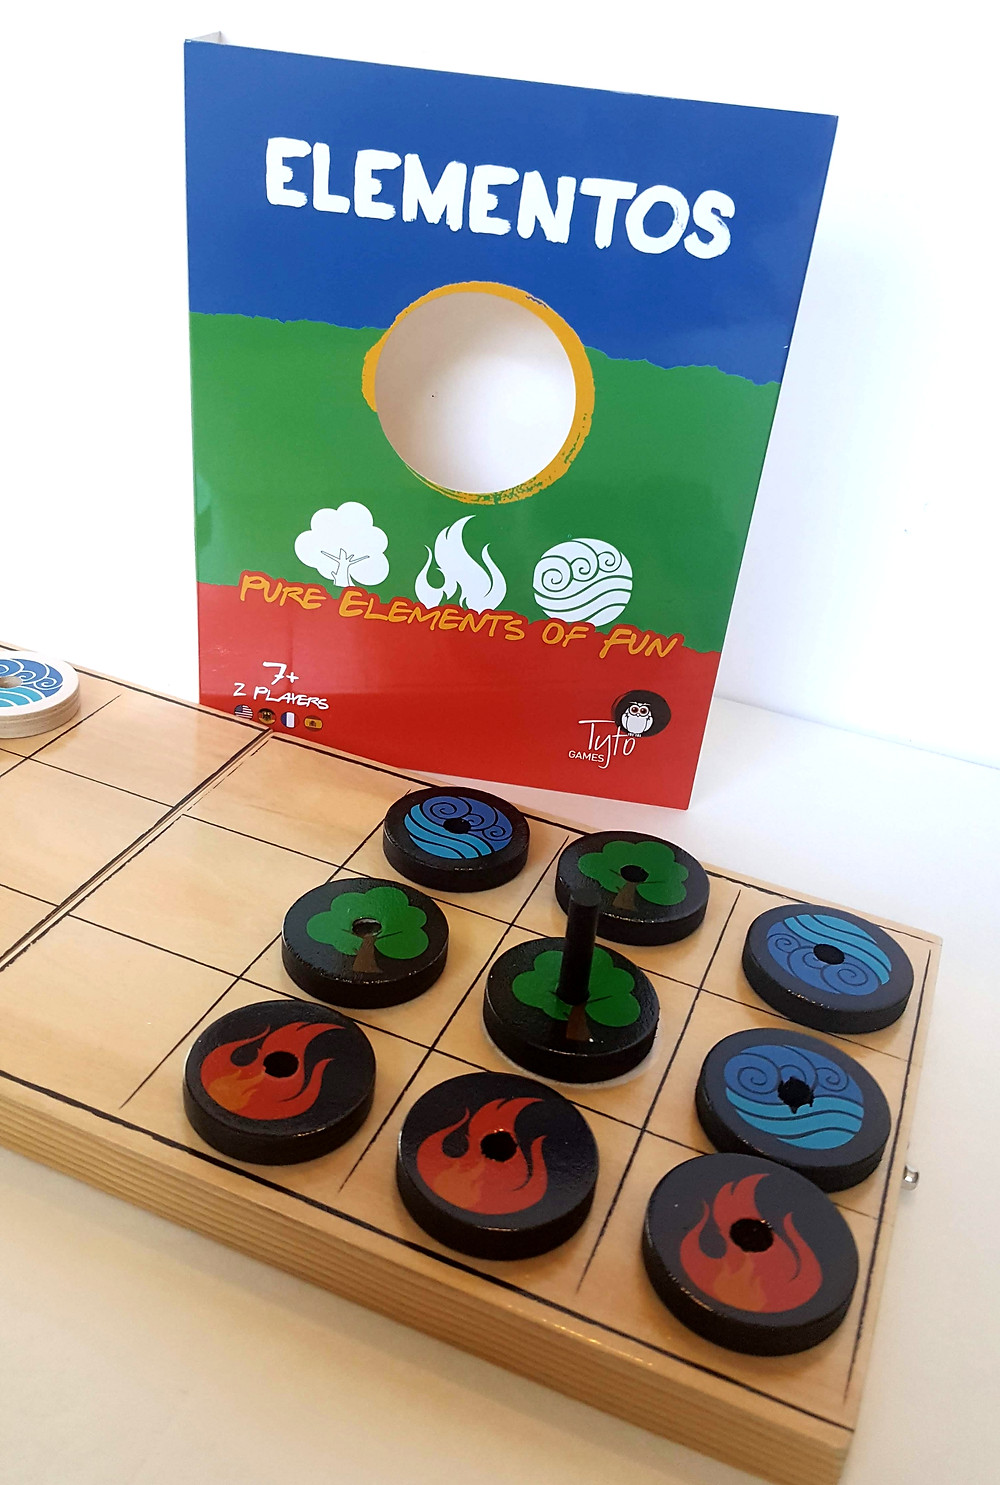 Elementos board game review | The object of the game is to get one of your wooden discs carrying the baton to touch your opponent's side of the board | Geeky Goodies boardgame reviews